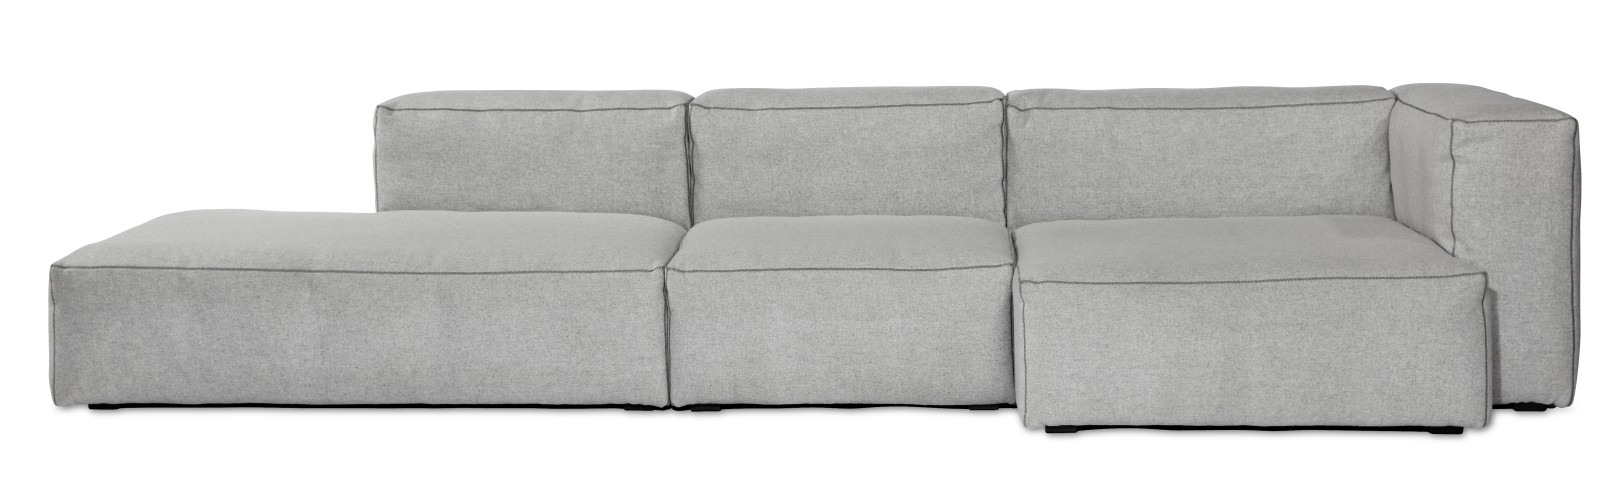 Mags Soft Middle Modular Seating Element S1963 Divina Melange 2 120